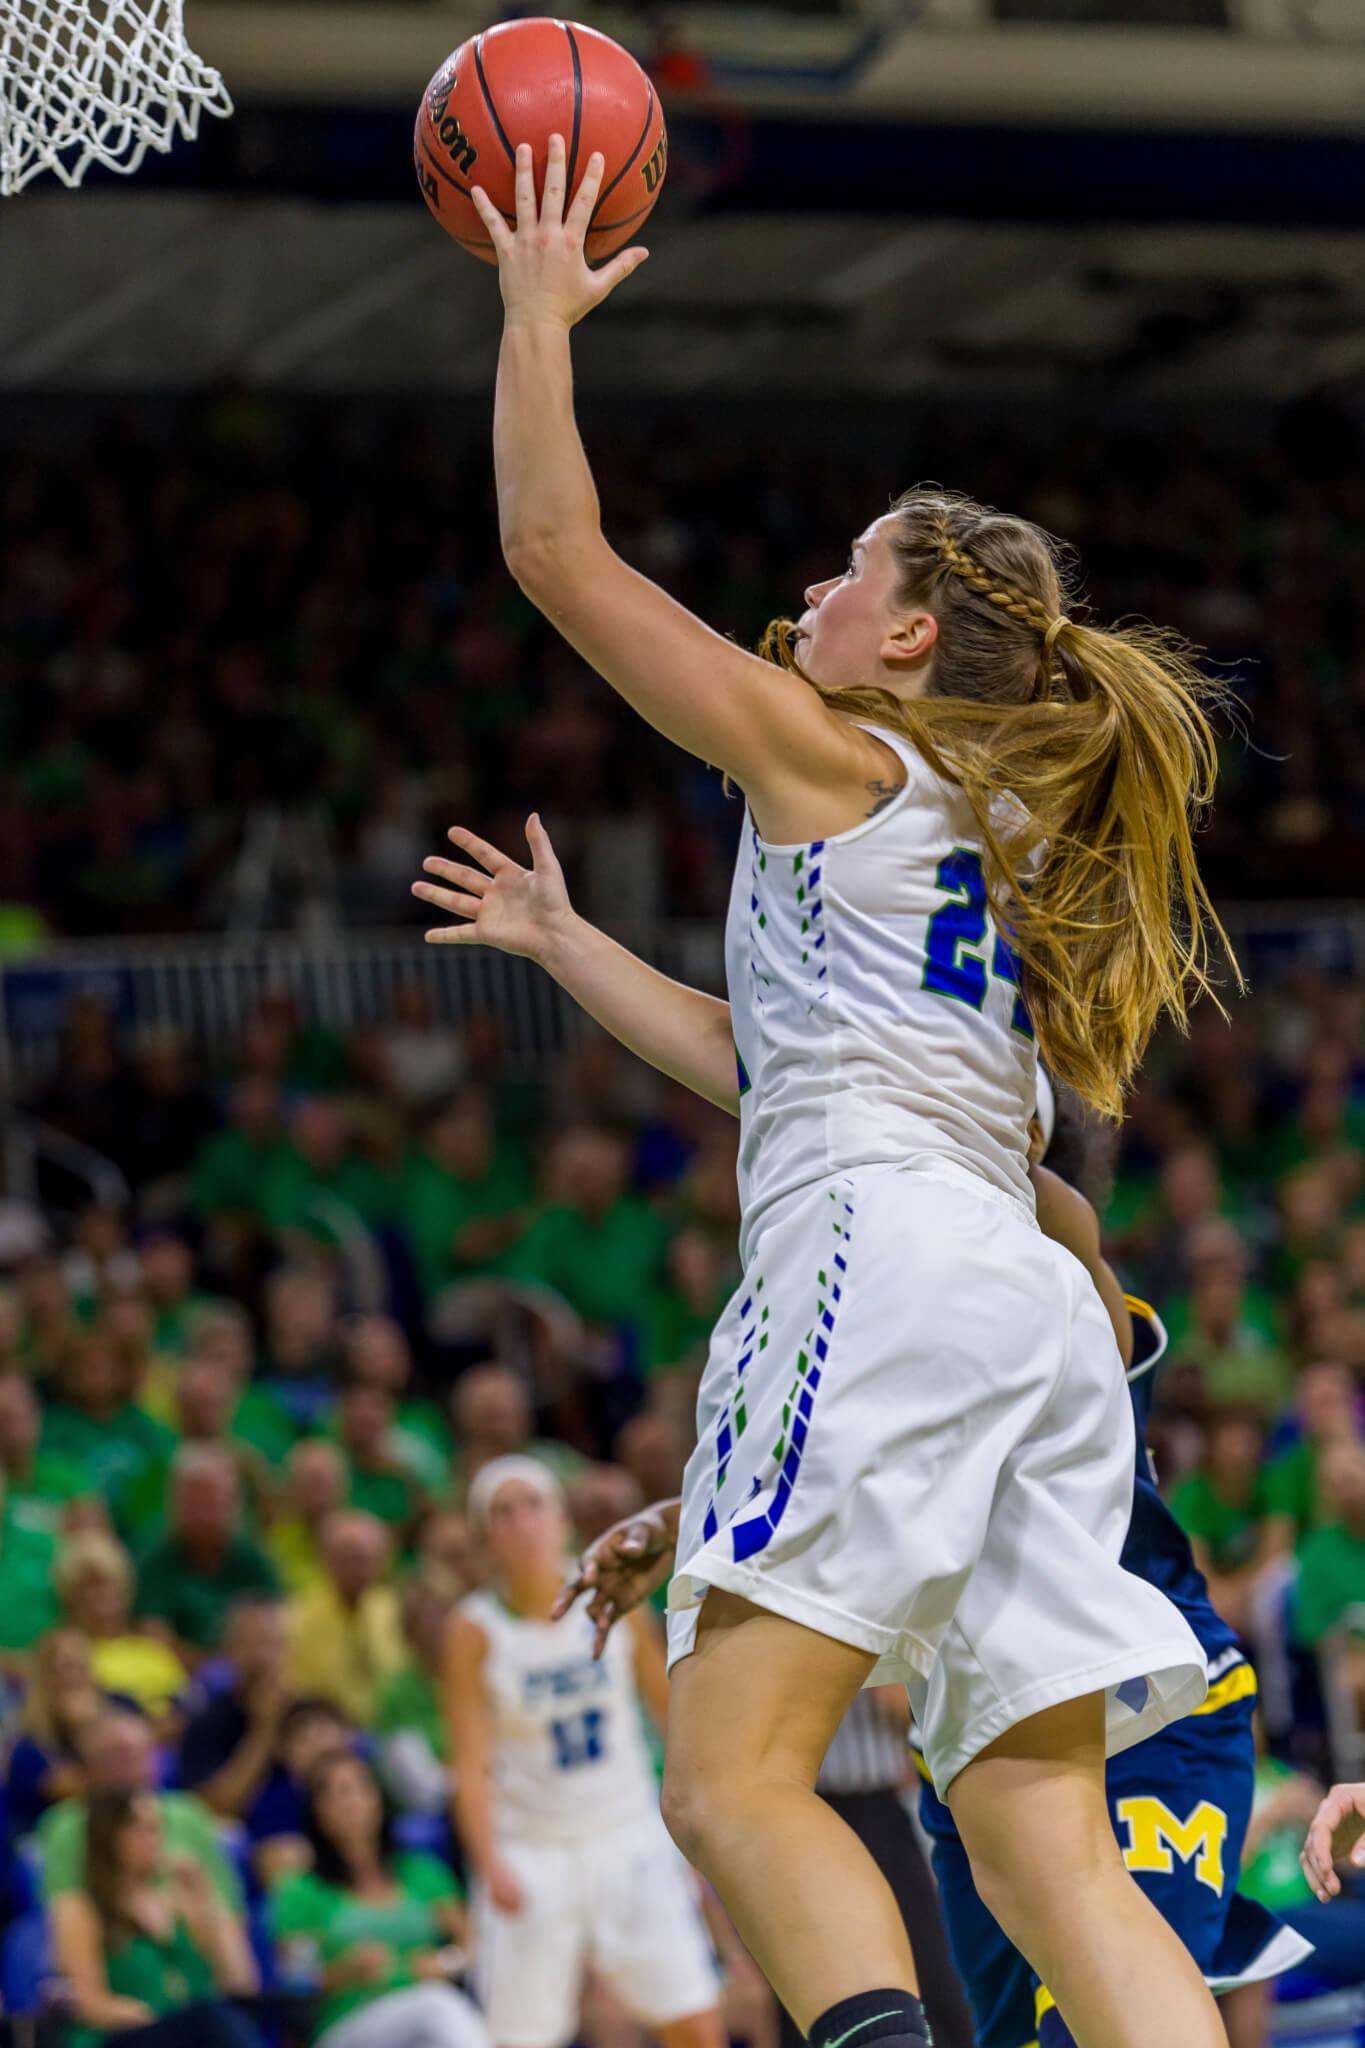 FGCU women's basketball picks up first win of the season with a 70-63 victory over Hartford